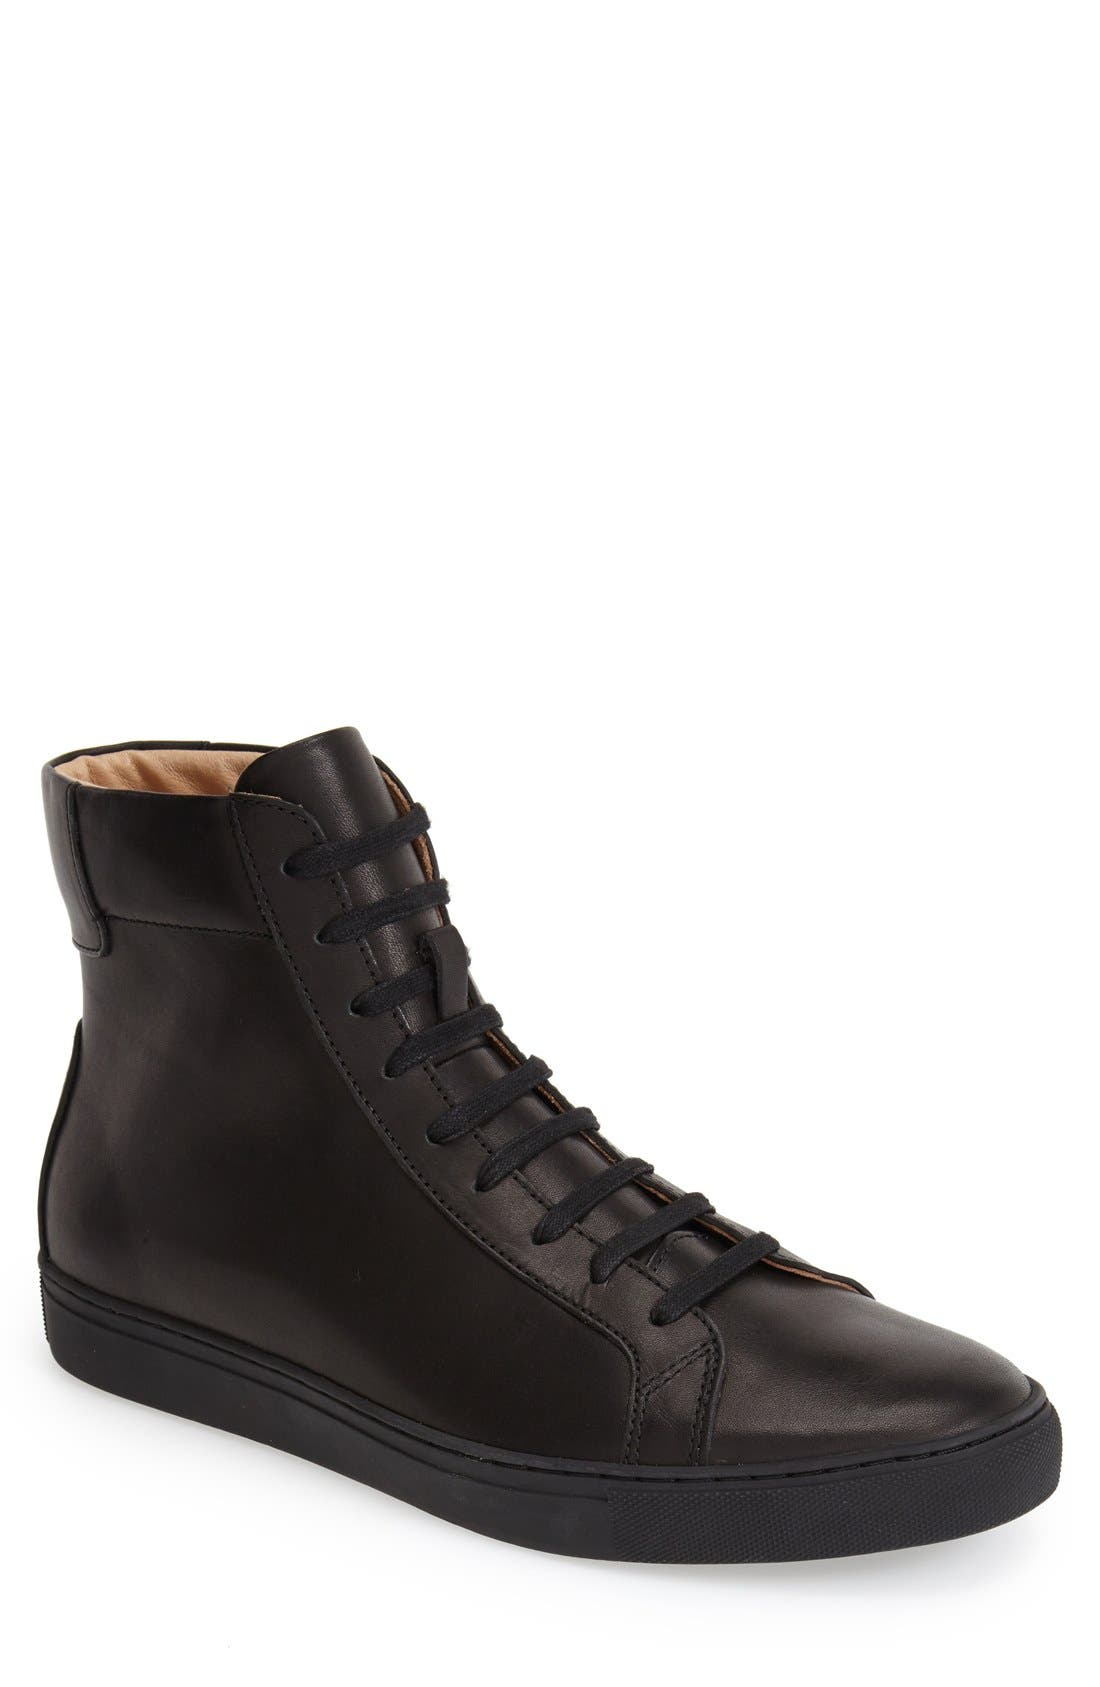 TCG 'Logan' Leather Sneaker, Main, color, 001